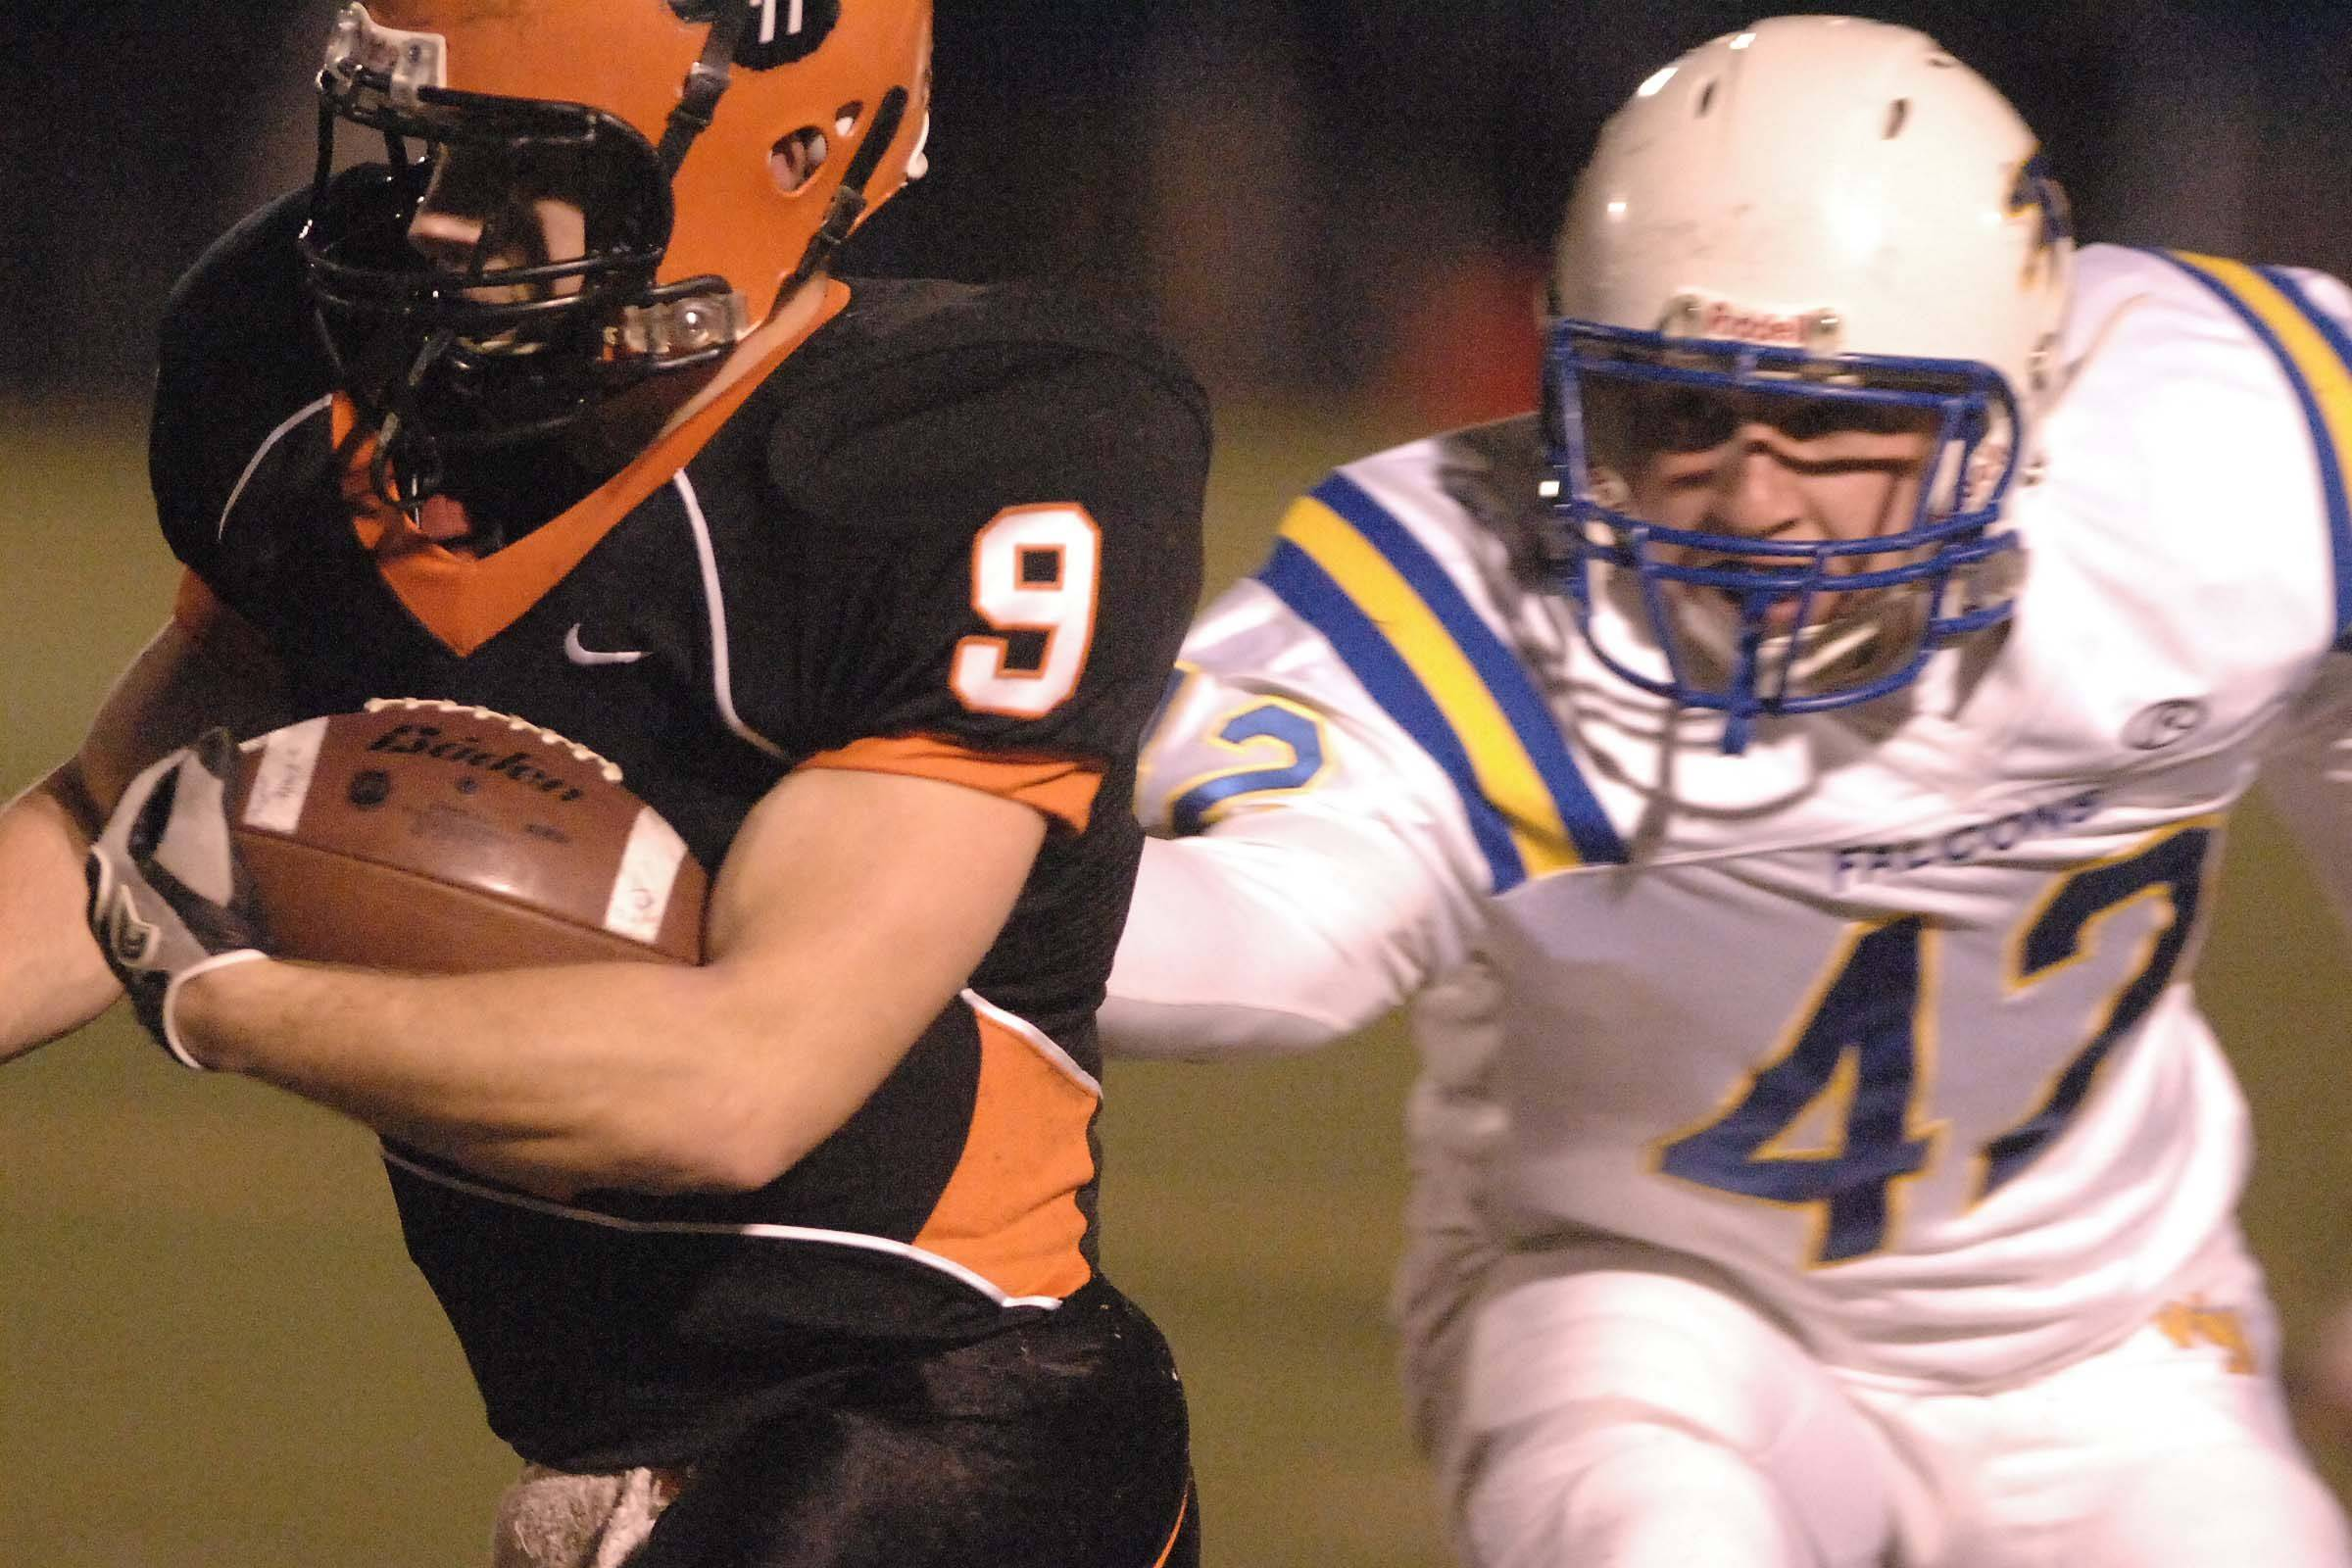 Matt Rogers,left, of Wheaton Warrenville South is chased down by John Murphy of Wheaton North during the Wheaton North at Wheaton Warrenville South game Saturday.